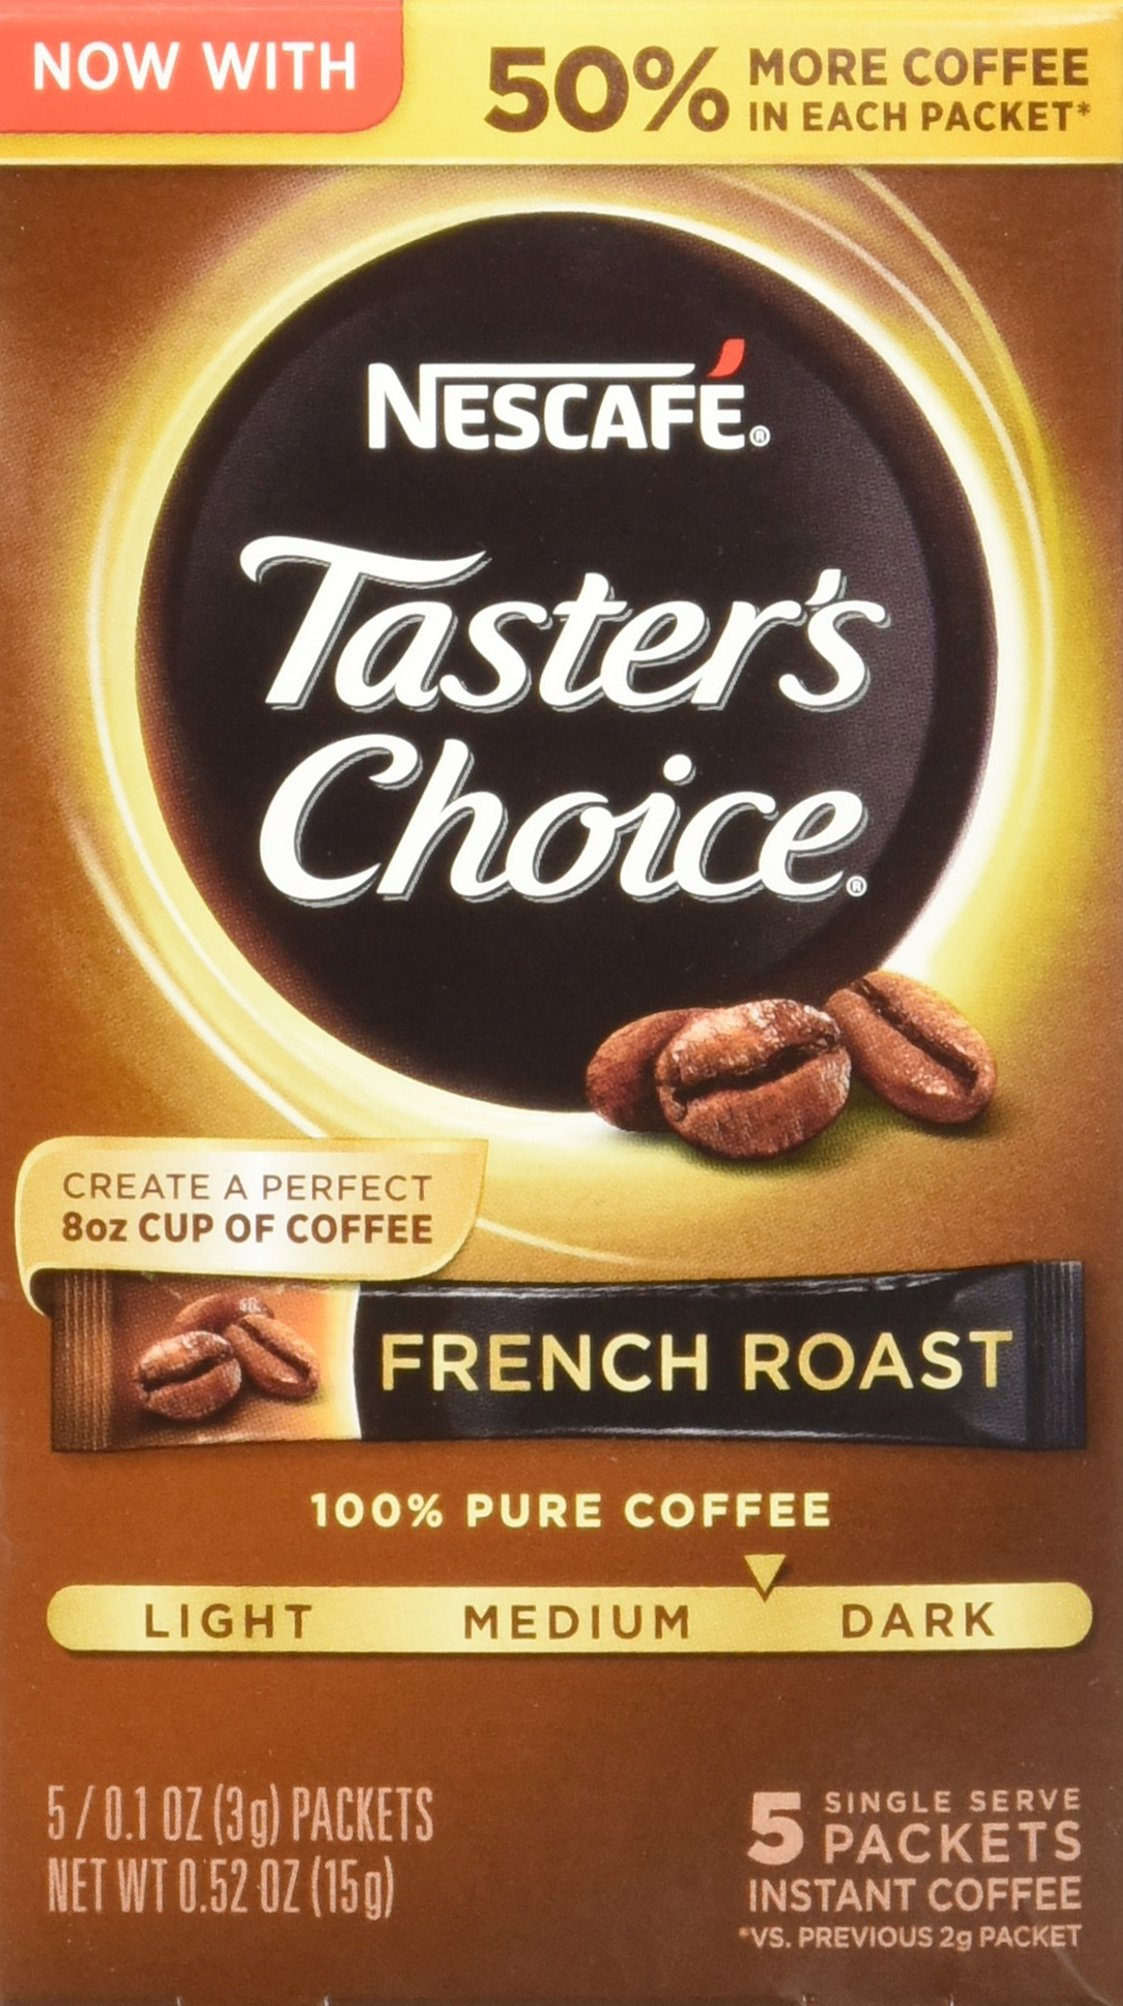 Nescafe Taster's Choice Instant Coffee, French Roast, 0.1 Ounce, 5 Count